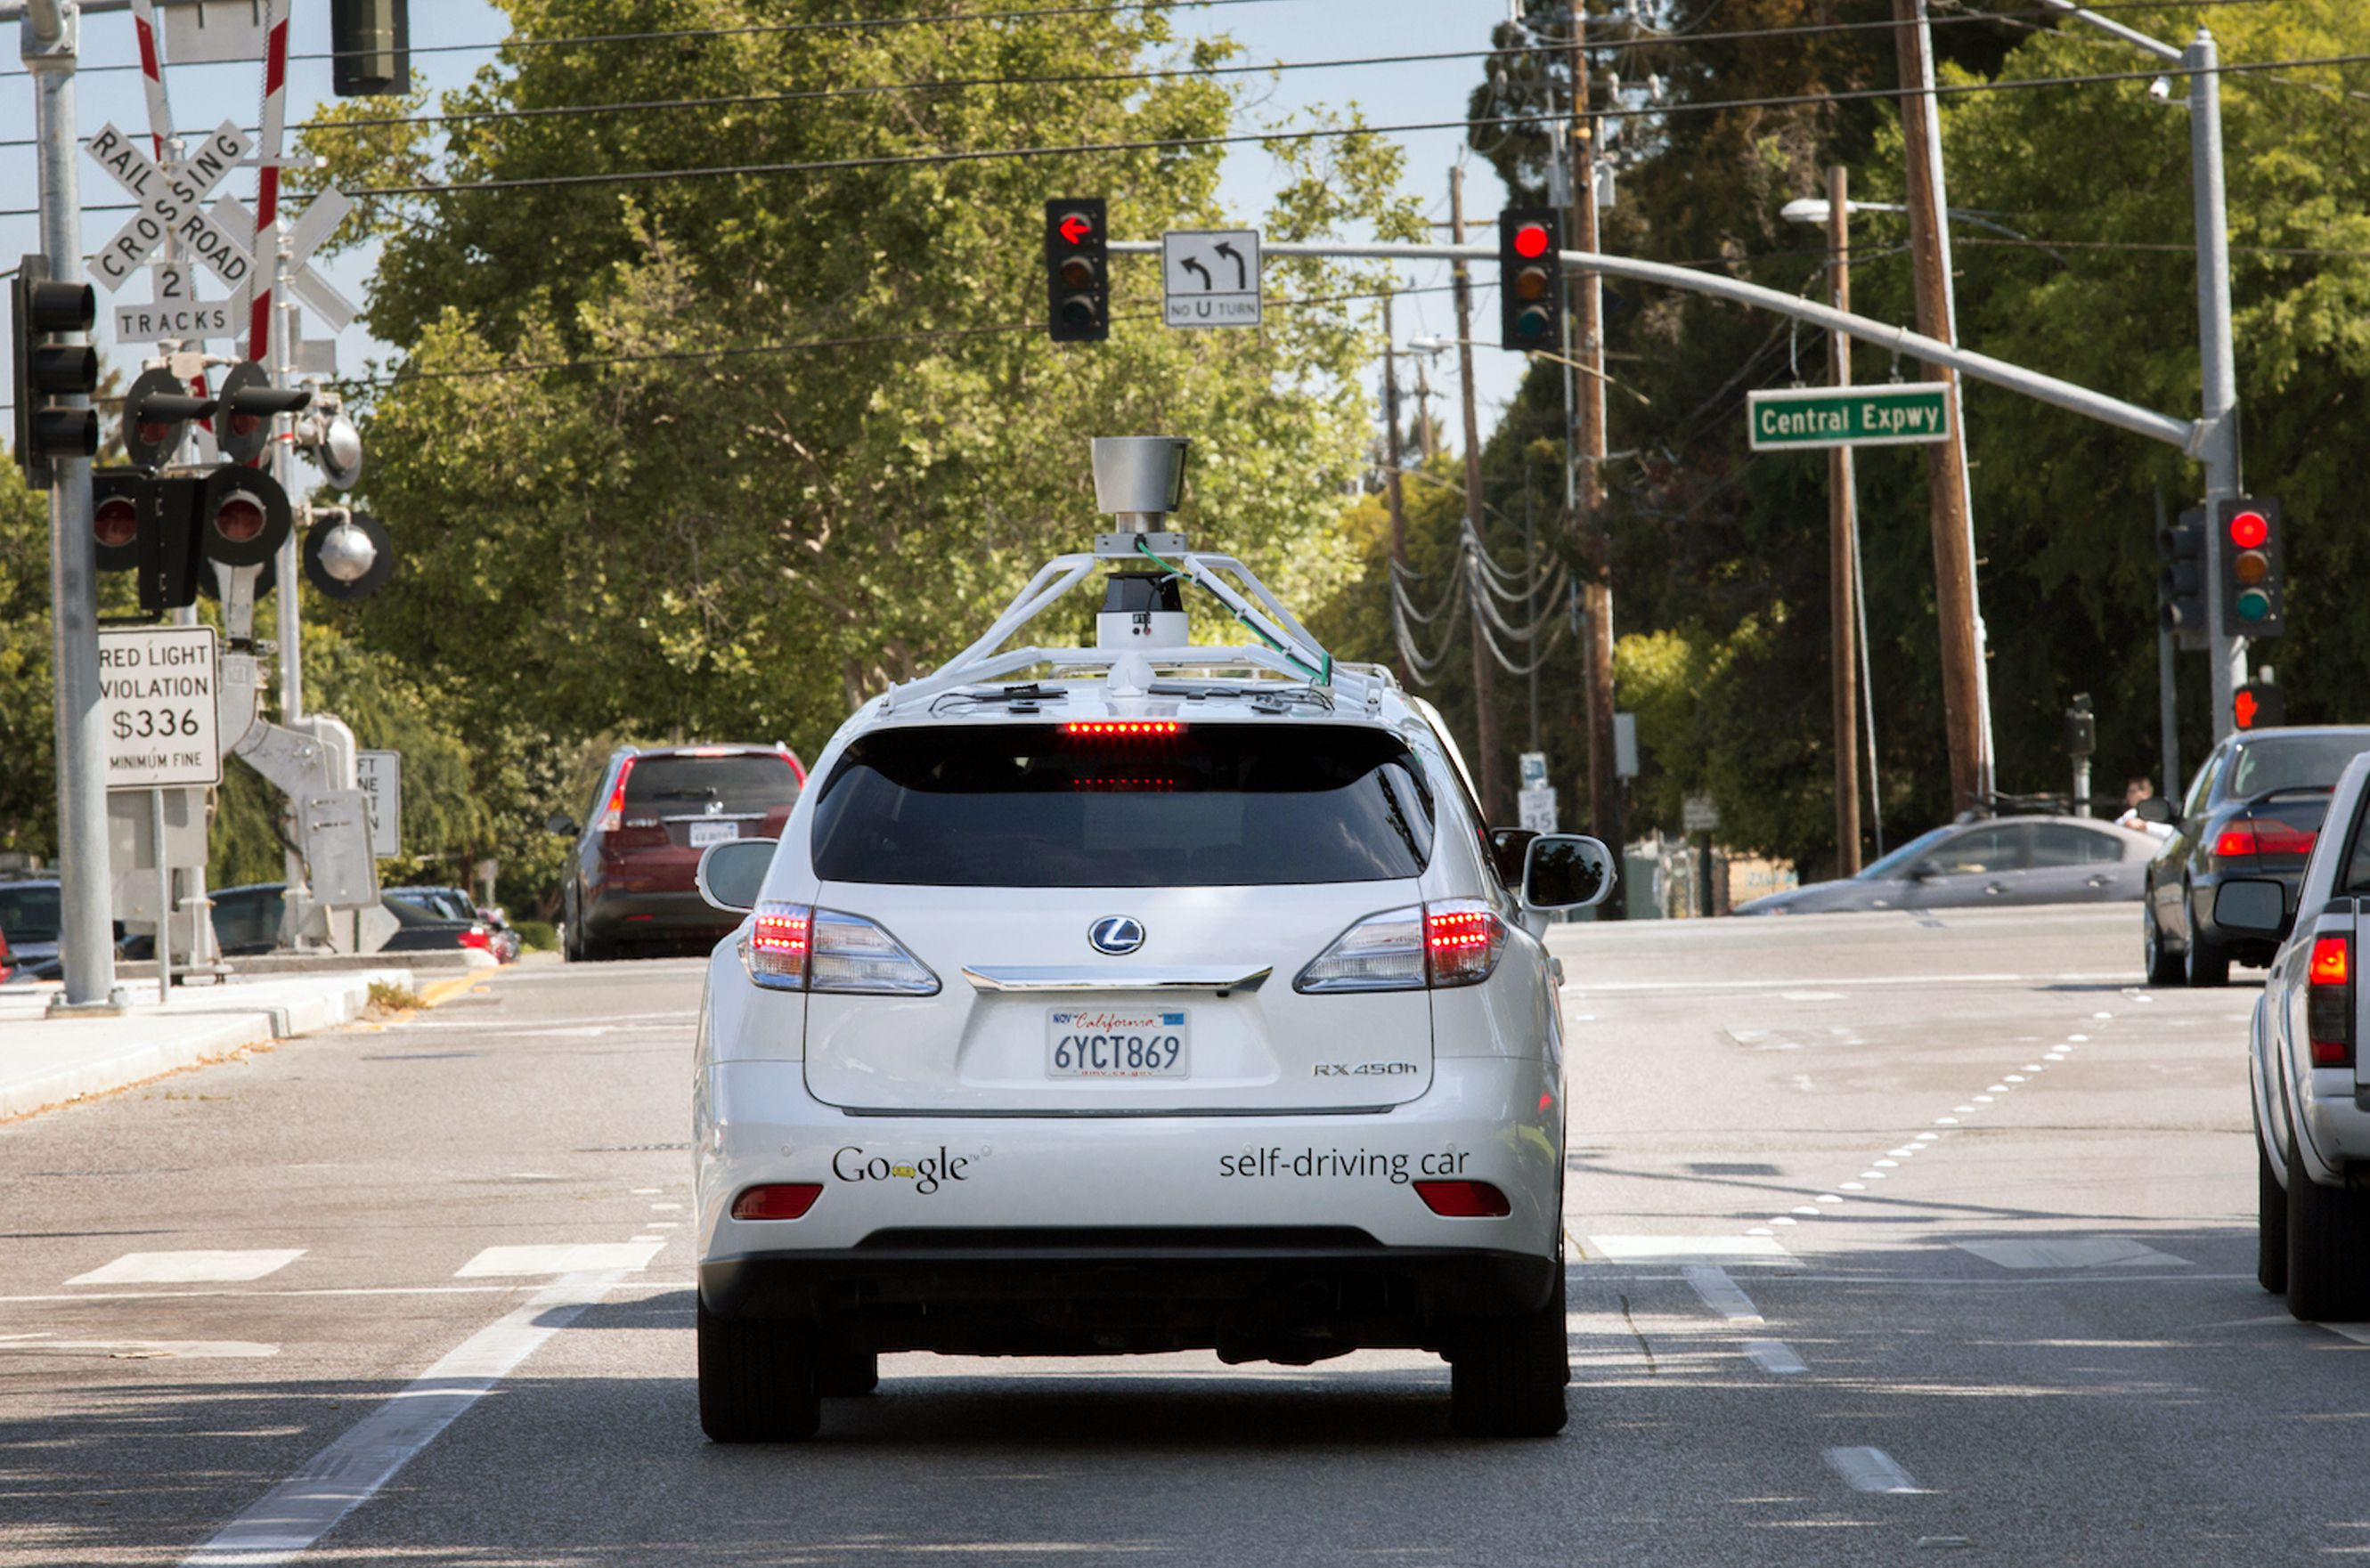 Driverless? Self-driving? No matter what you call them